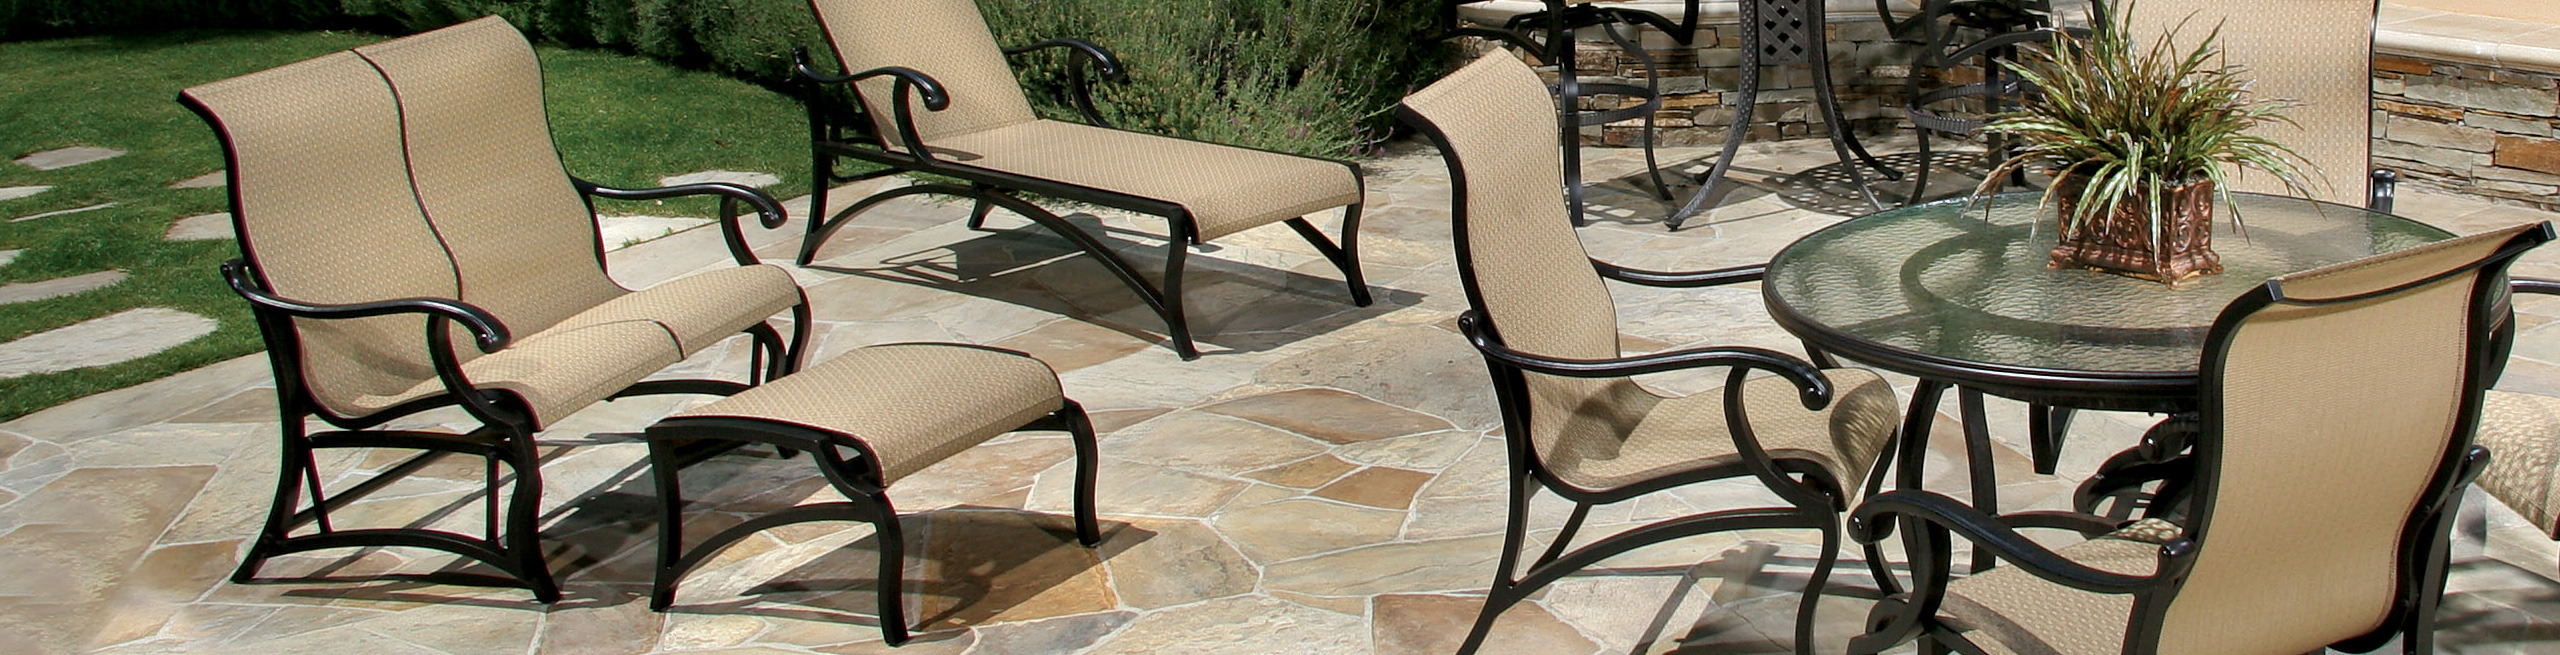 Outdoor Chairs: Outdoor Double Gliders | Today's Patio Pertaining To Padded Sling Double Gliders (View 25 of 25)